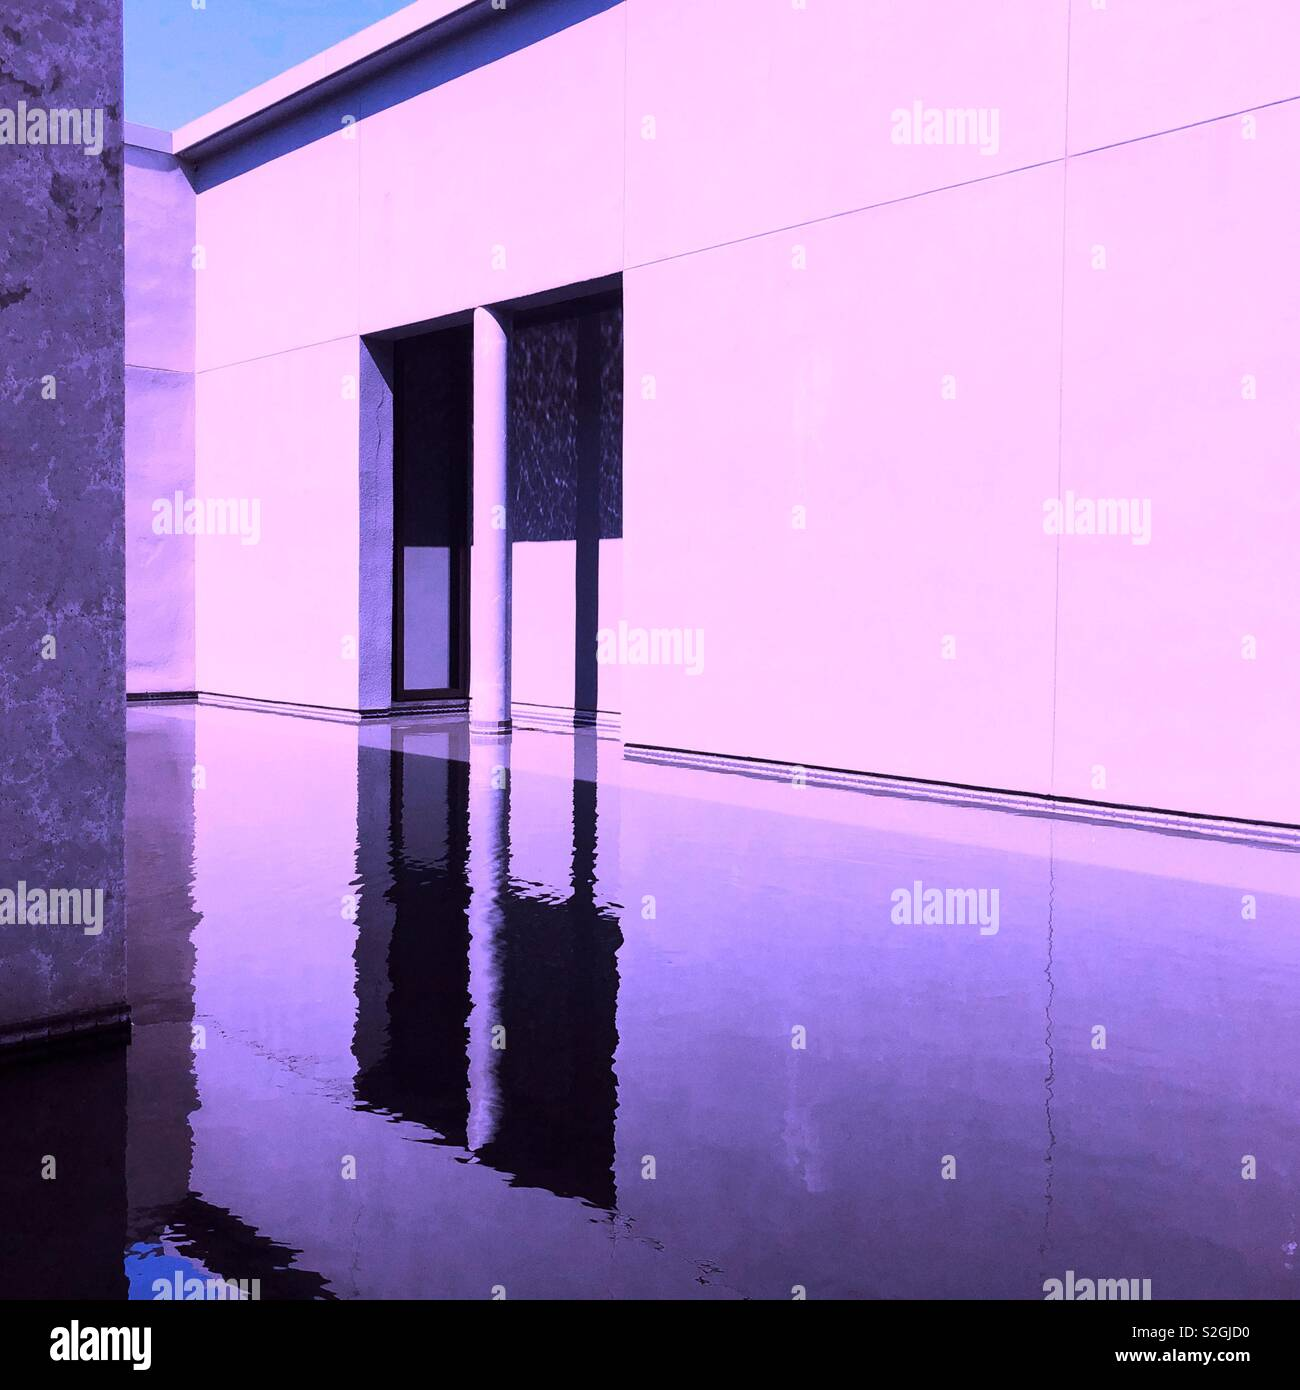 Purple haze reflection - Stock Image